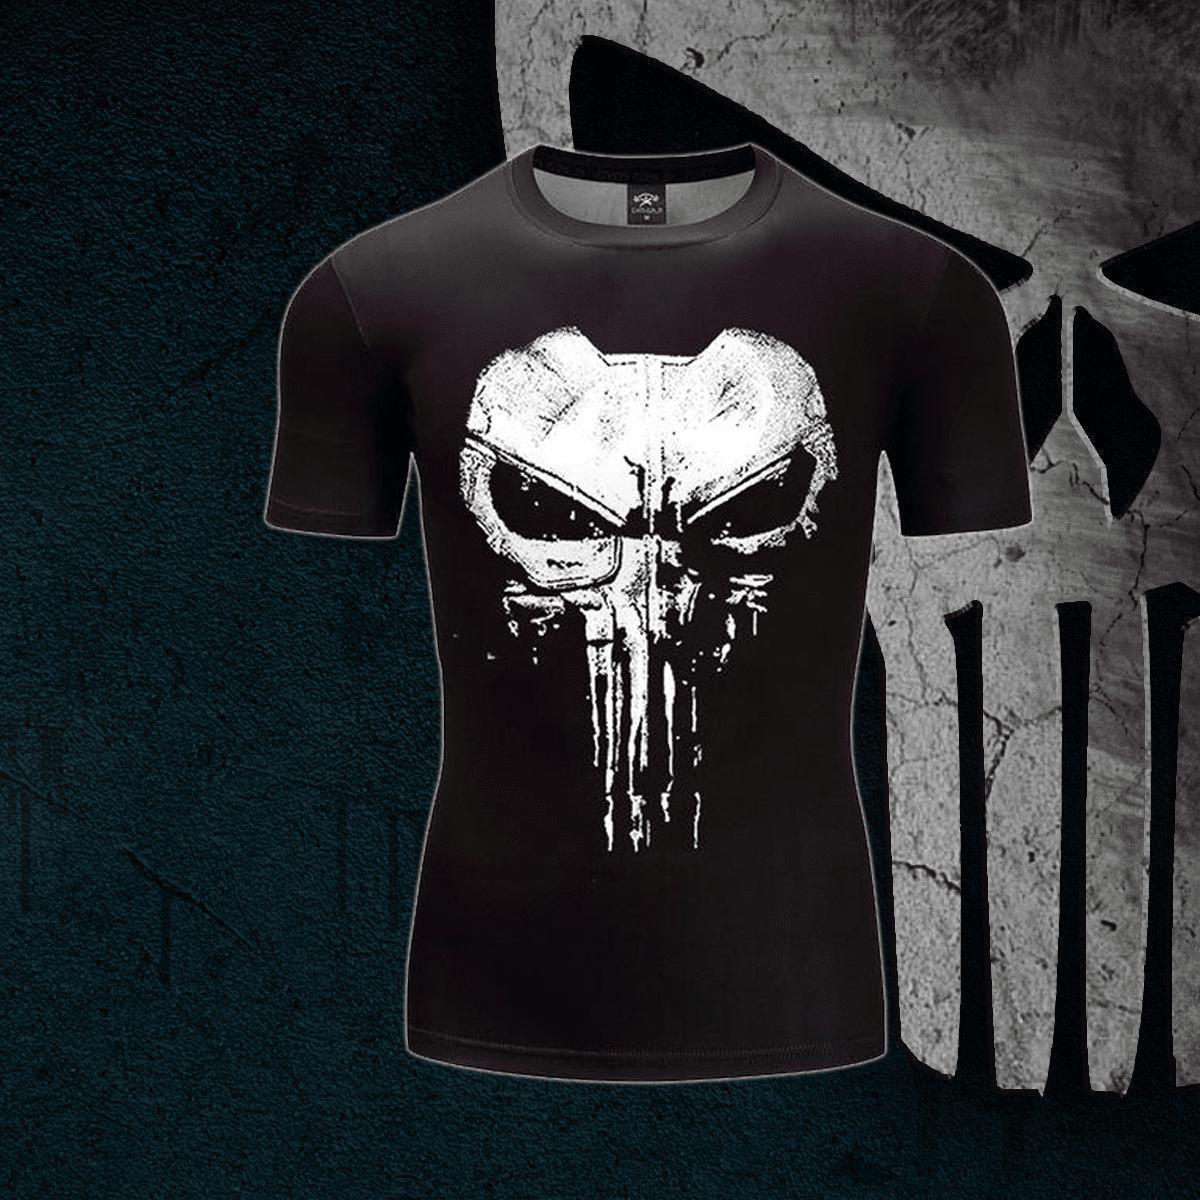 Punisher TV Series Compression Shirt